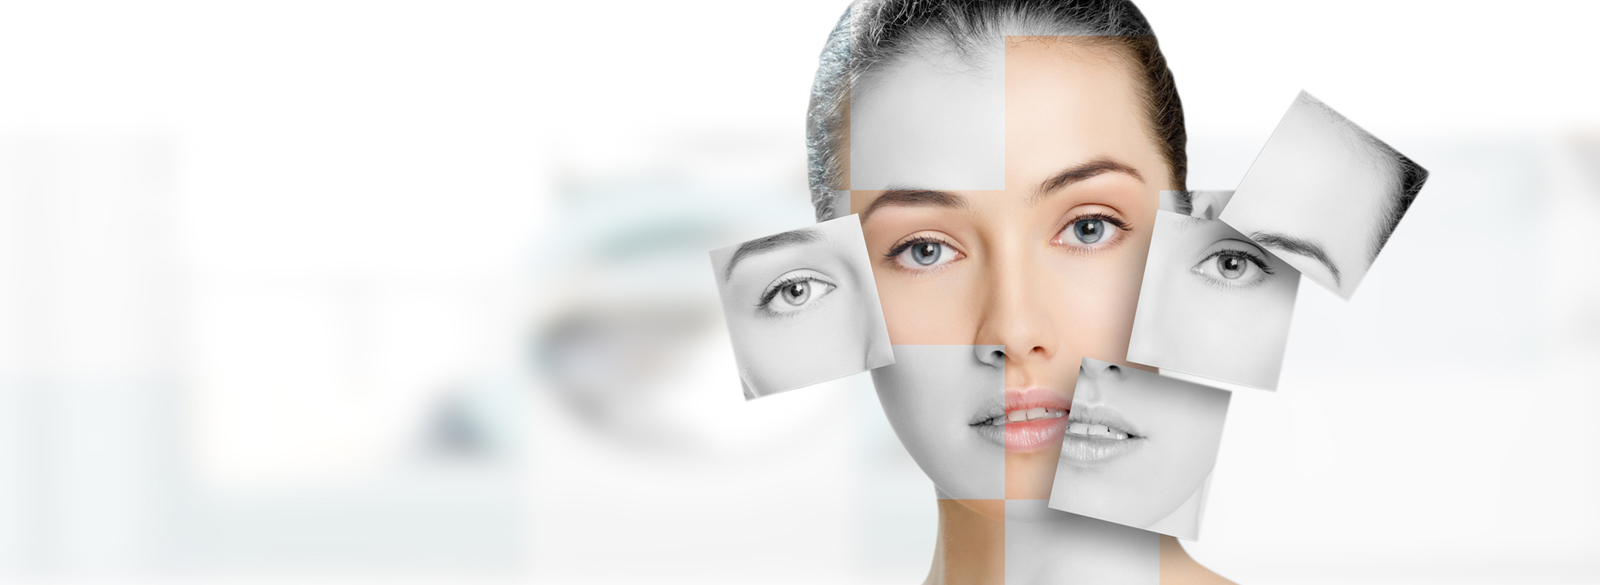 Cosmetic And Plastic Surgery In Kolkata By Dr. Souvik Adhikari